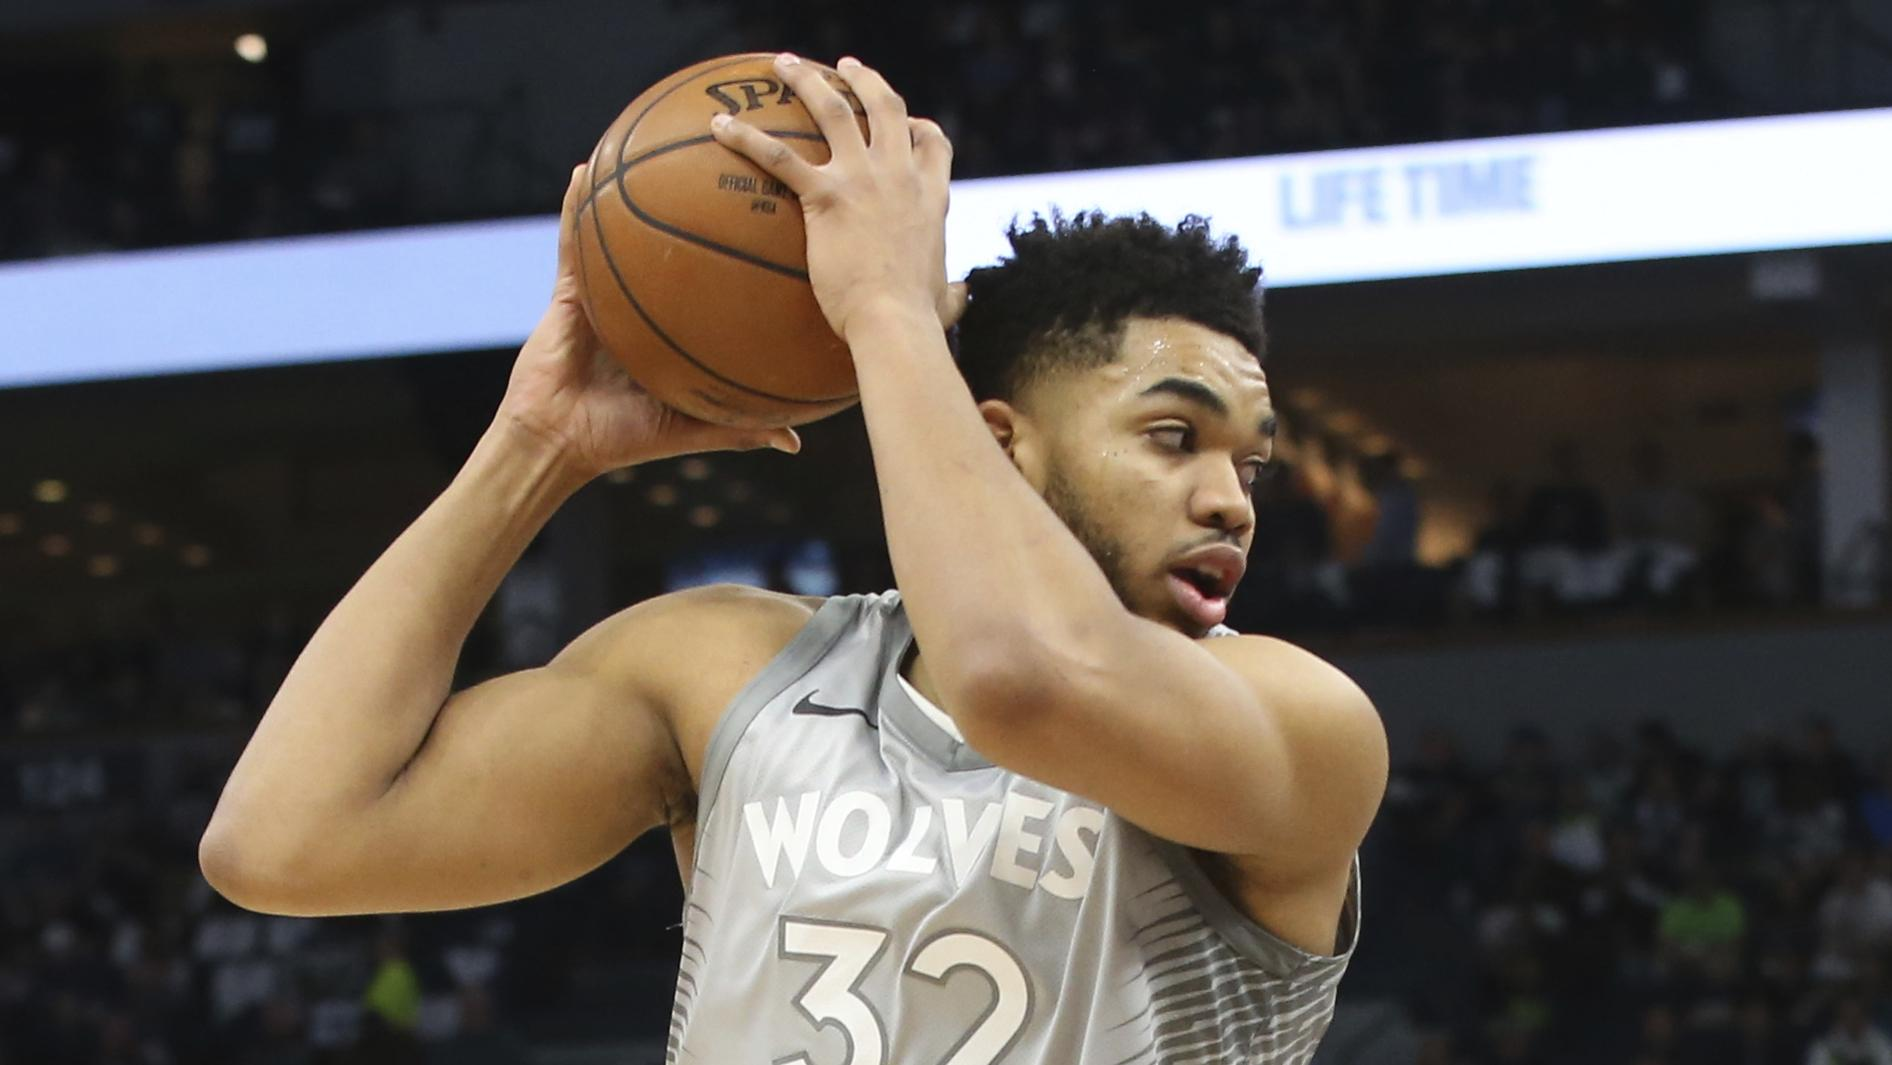 9746af6daa4 Timberwolves All-Star Karl-Anthony Towns has scored just 13 points on 5 for